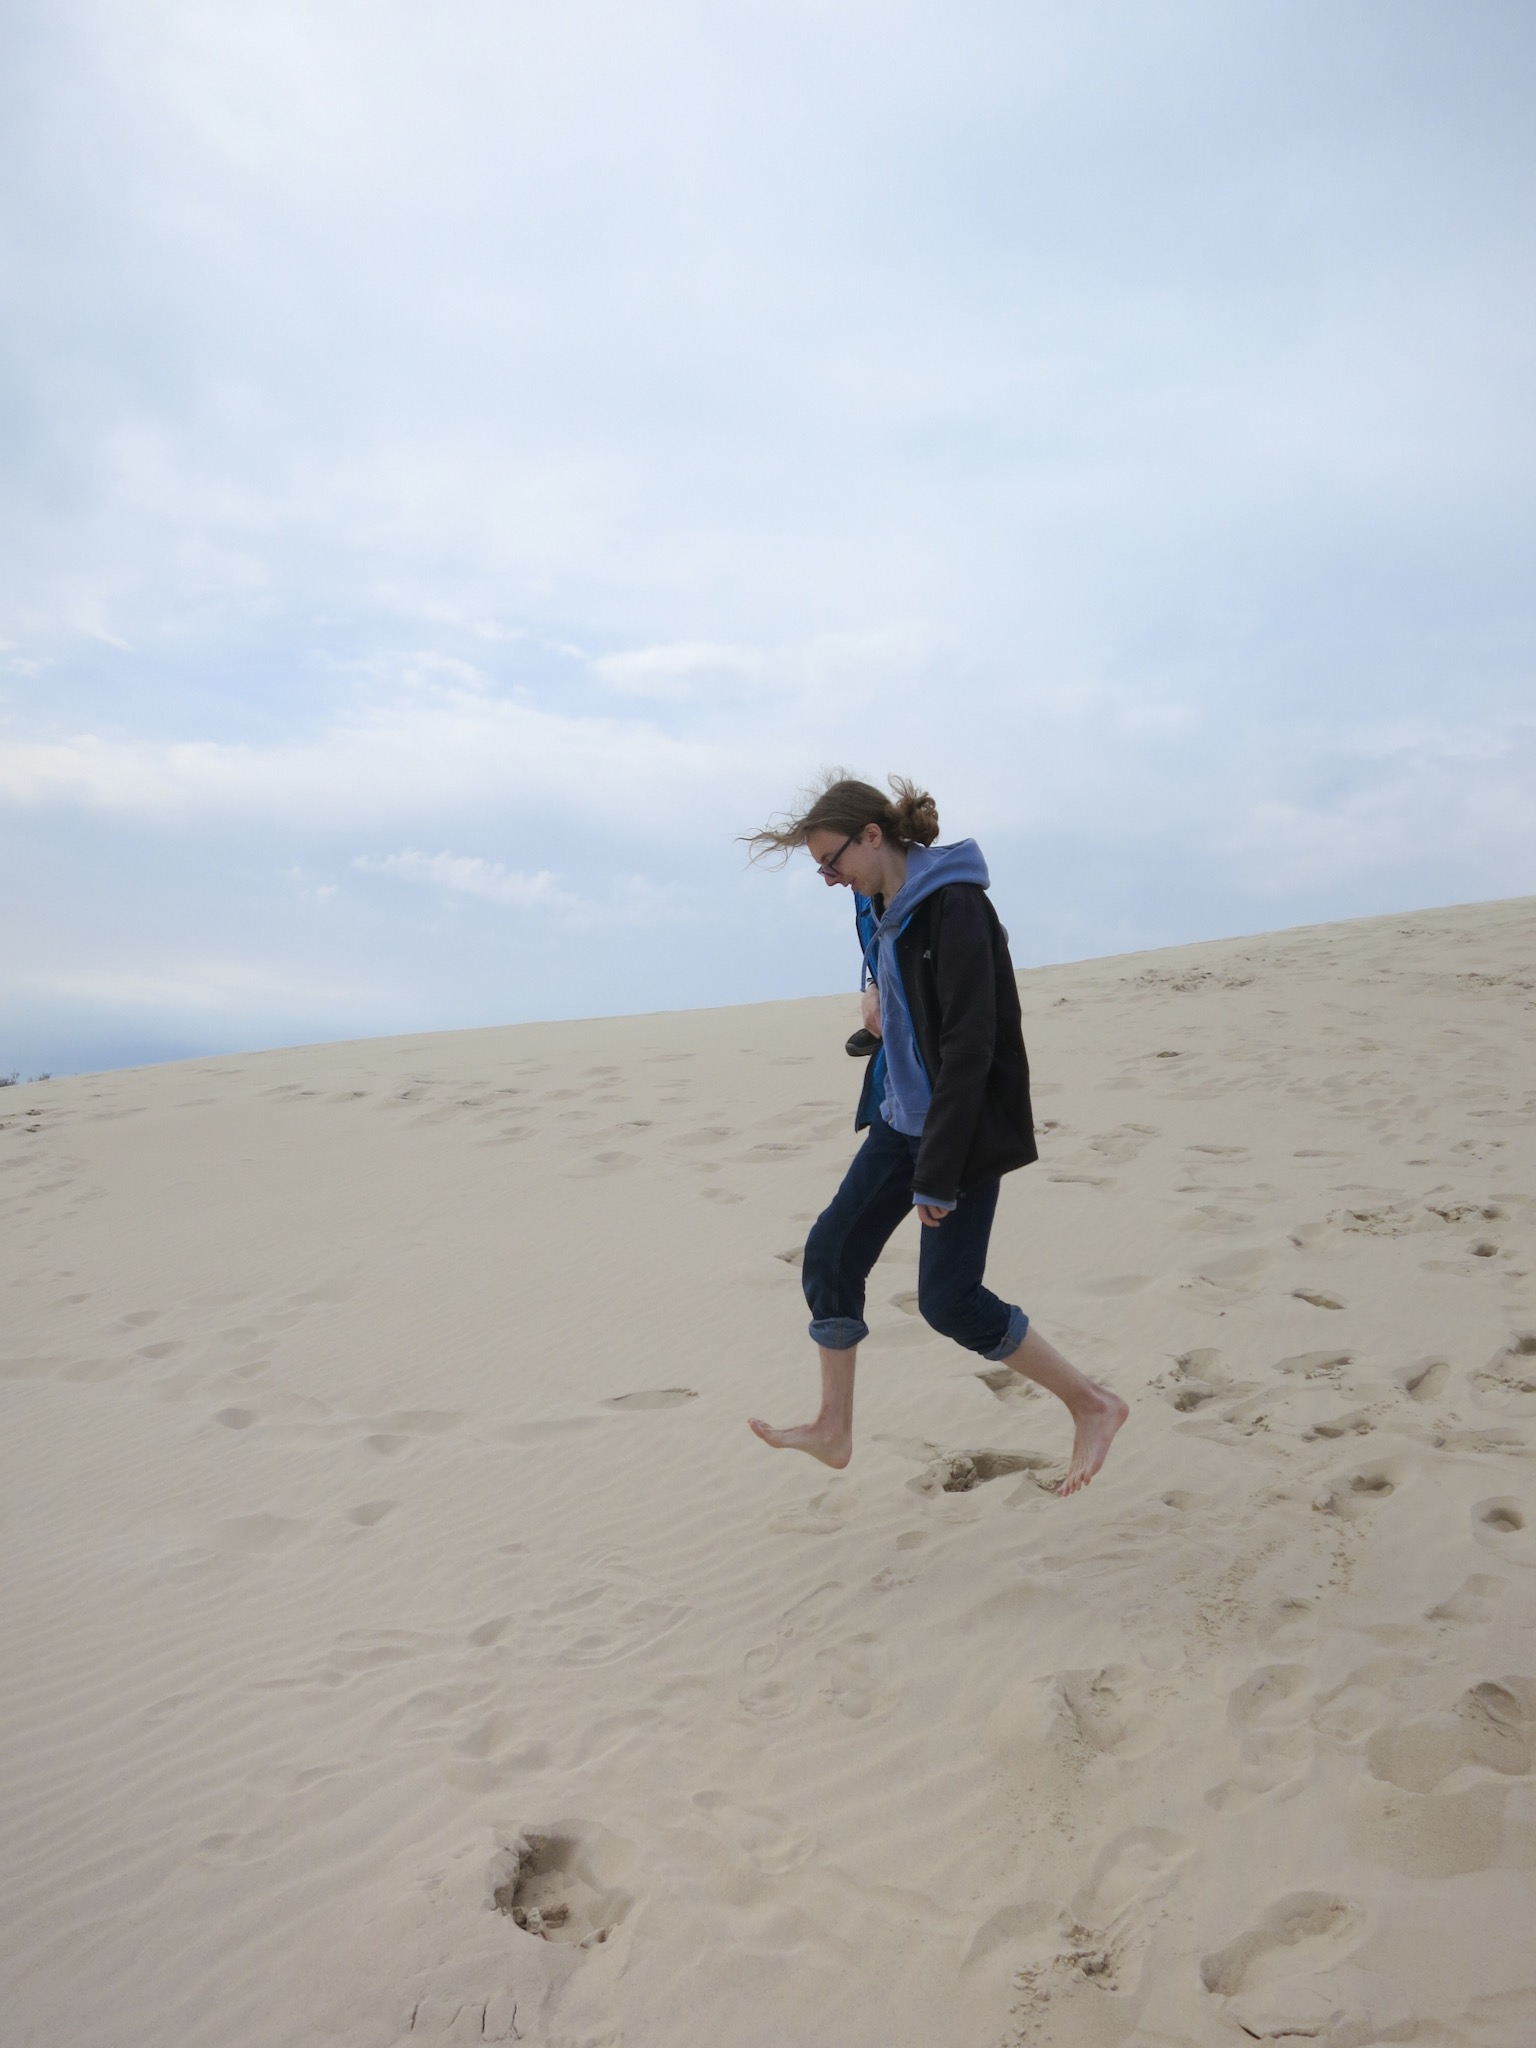 Jumping above the sands on the Łackca Sand Dune In Słowiński National Park